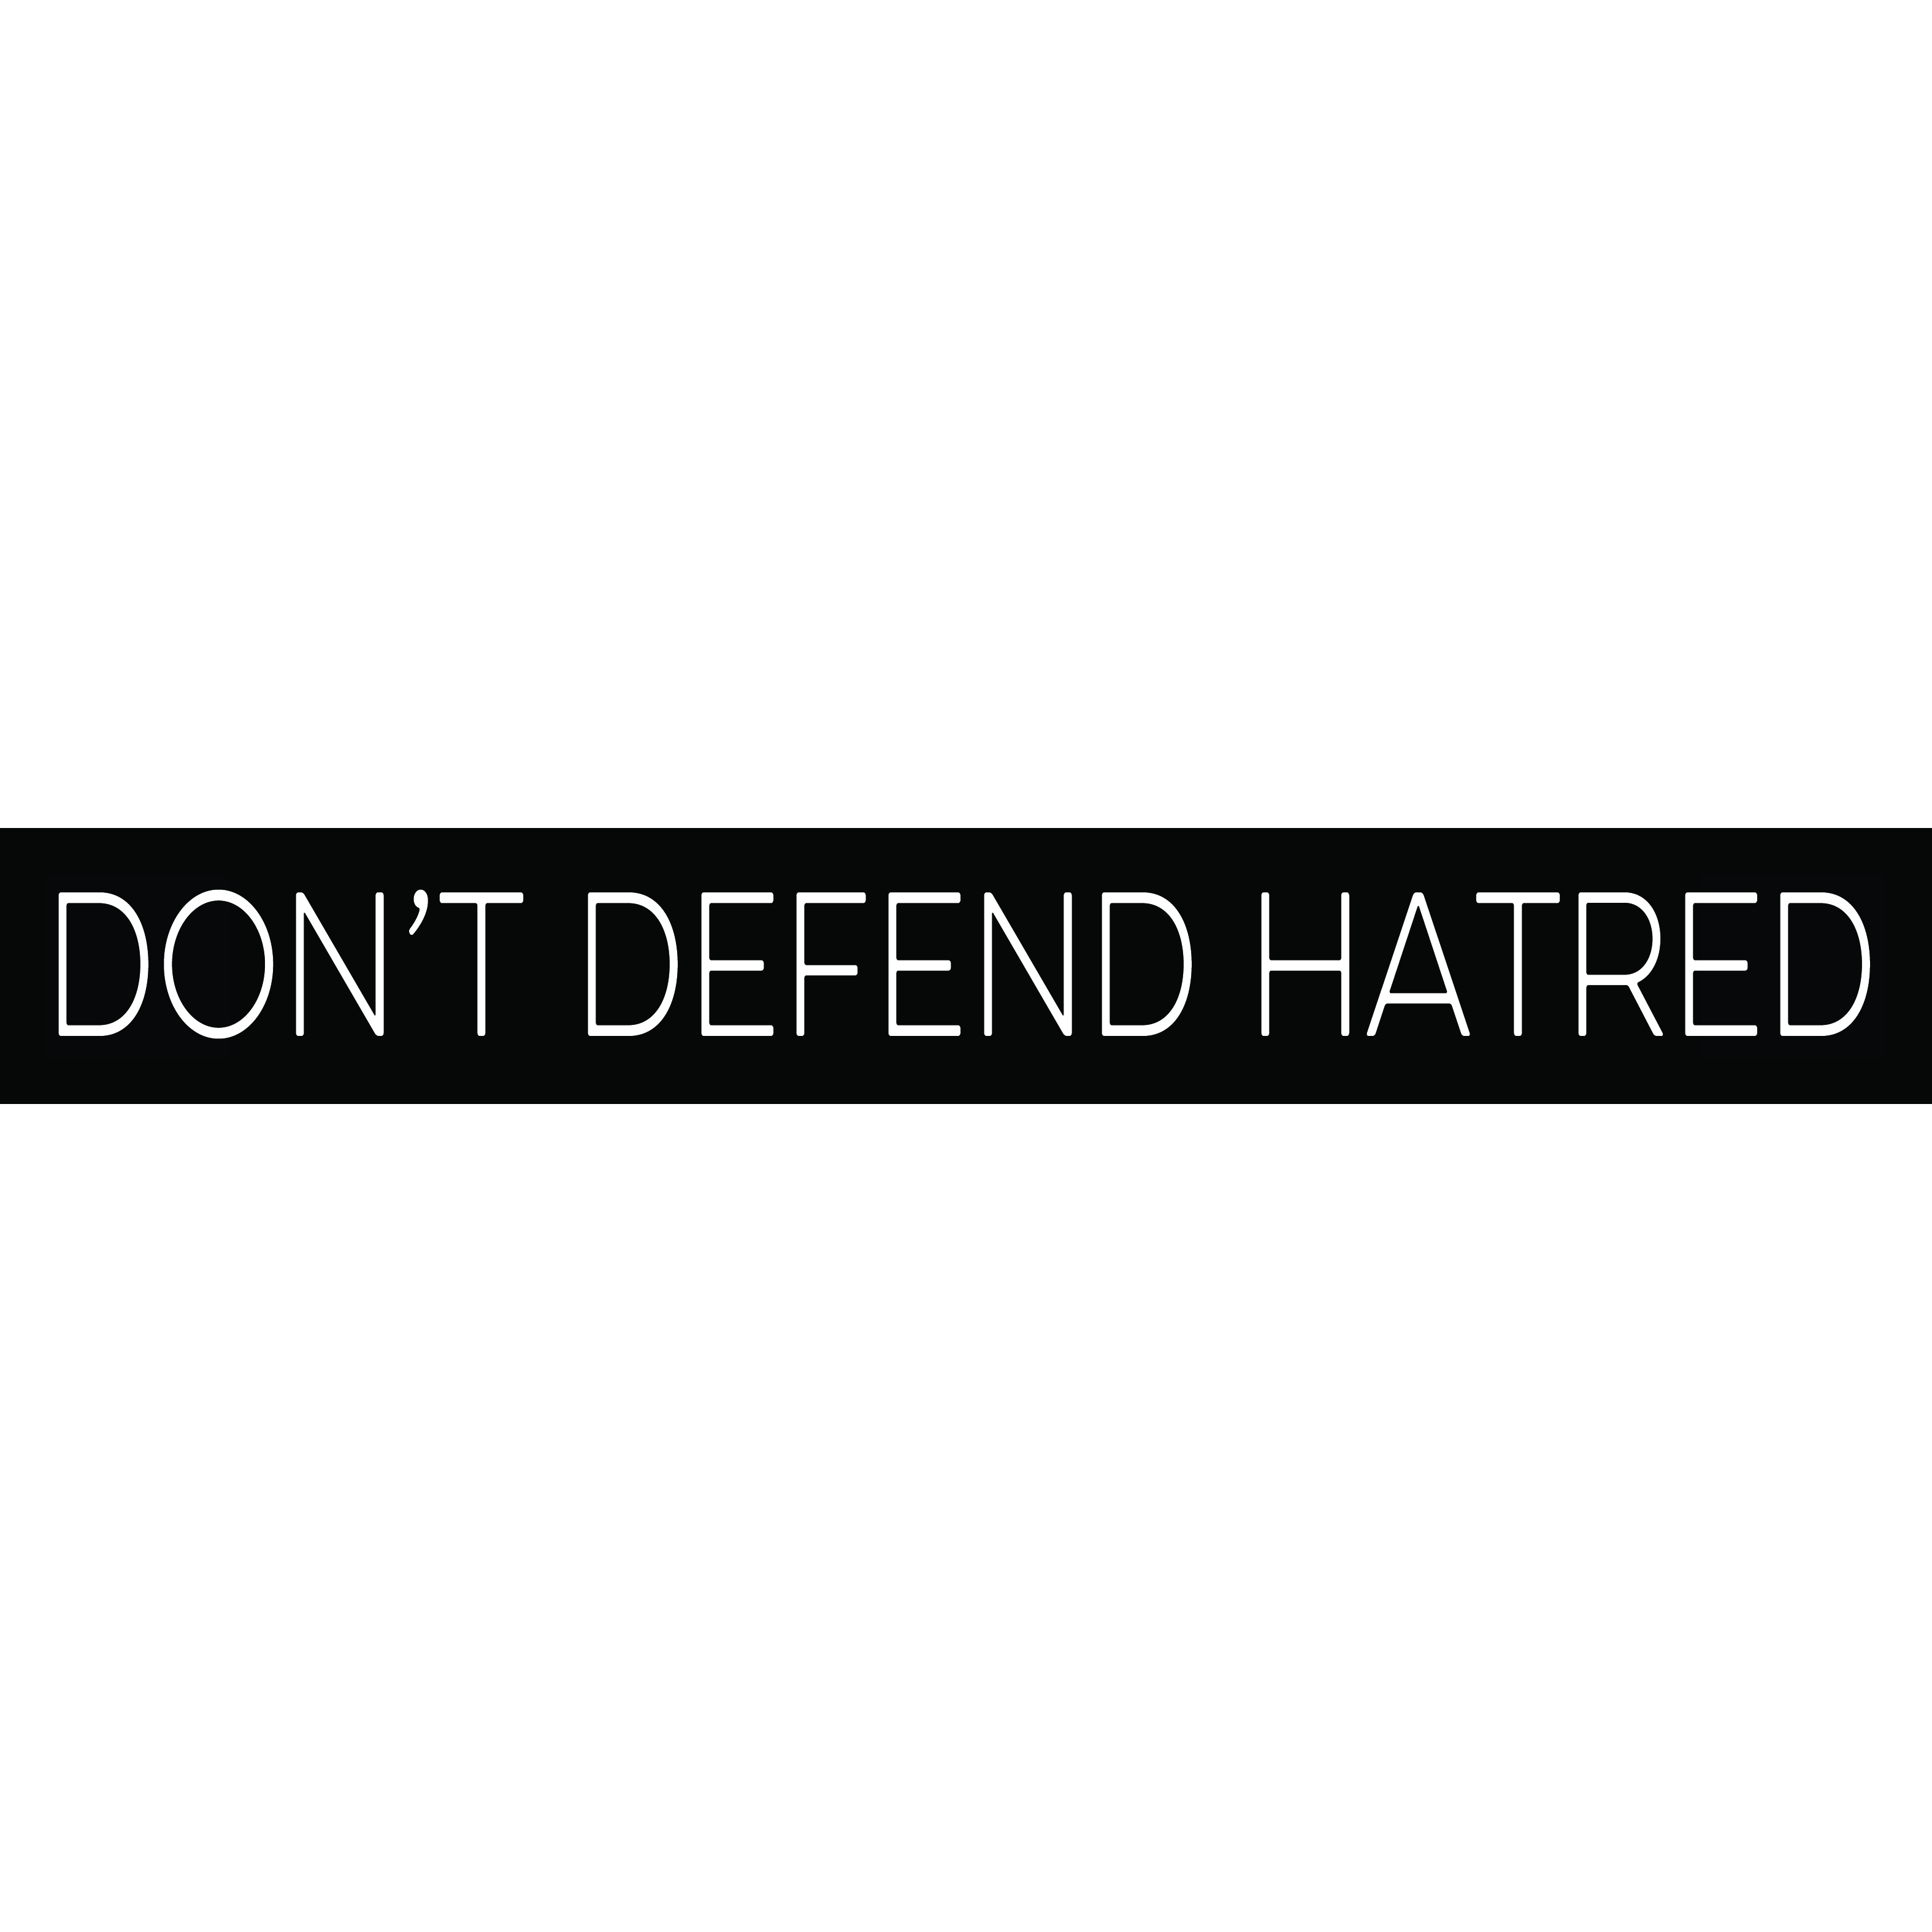 DON'T DEFEND HATRED 00009